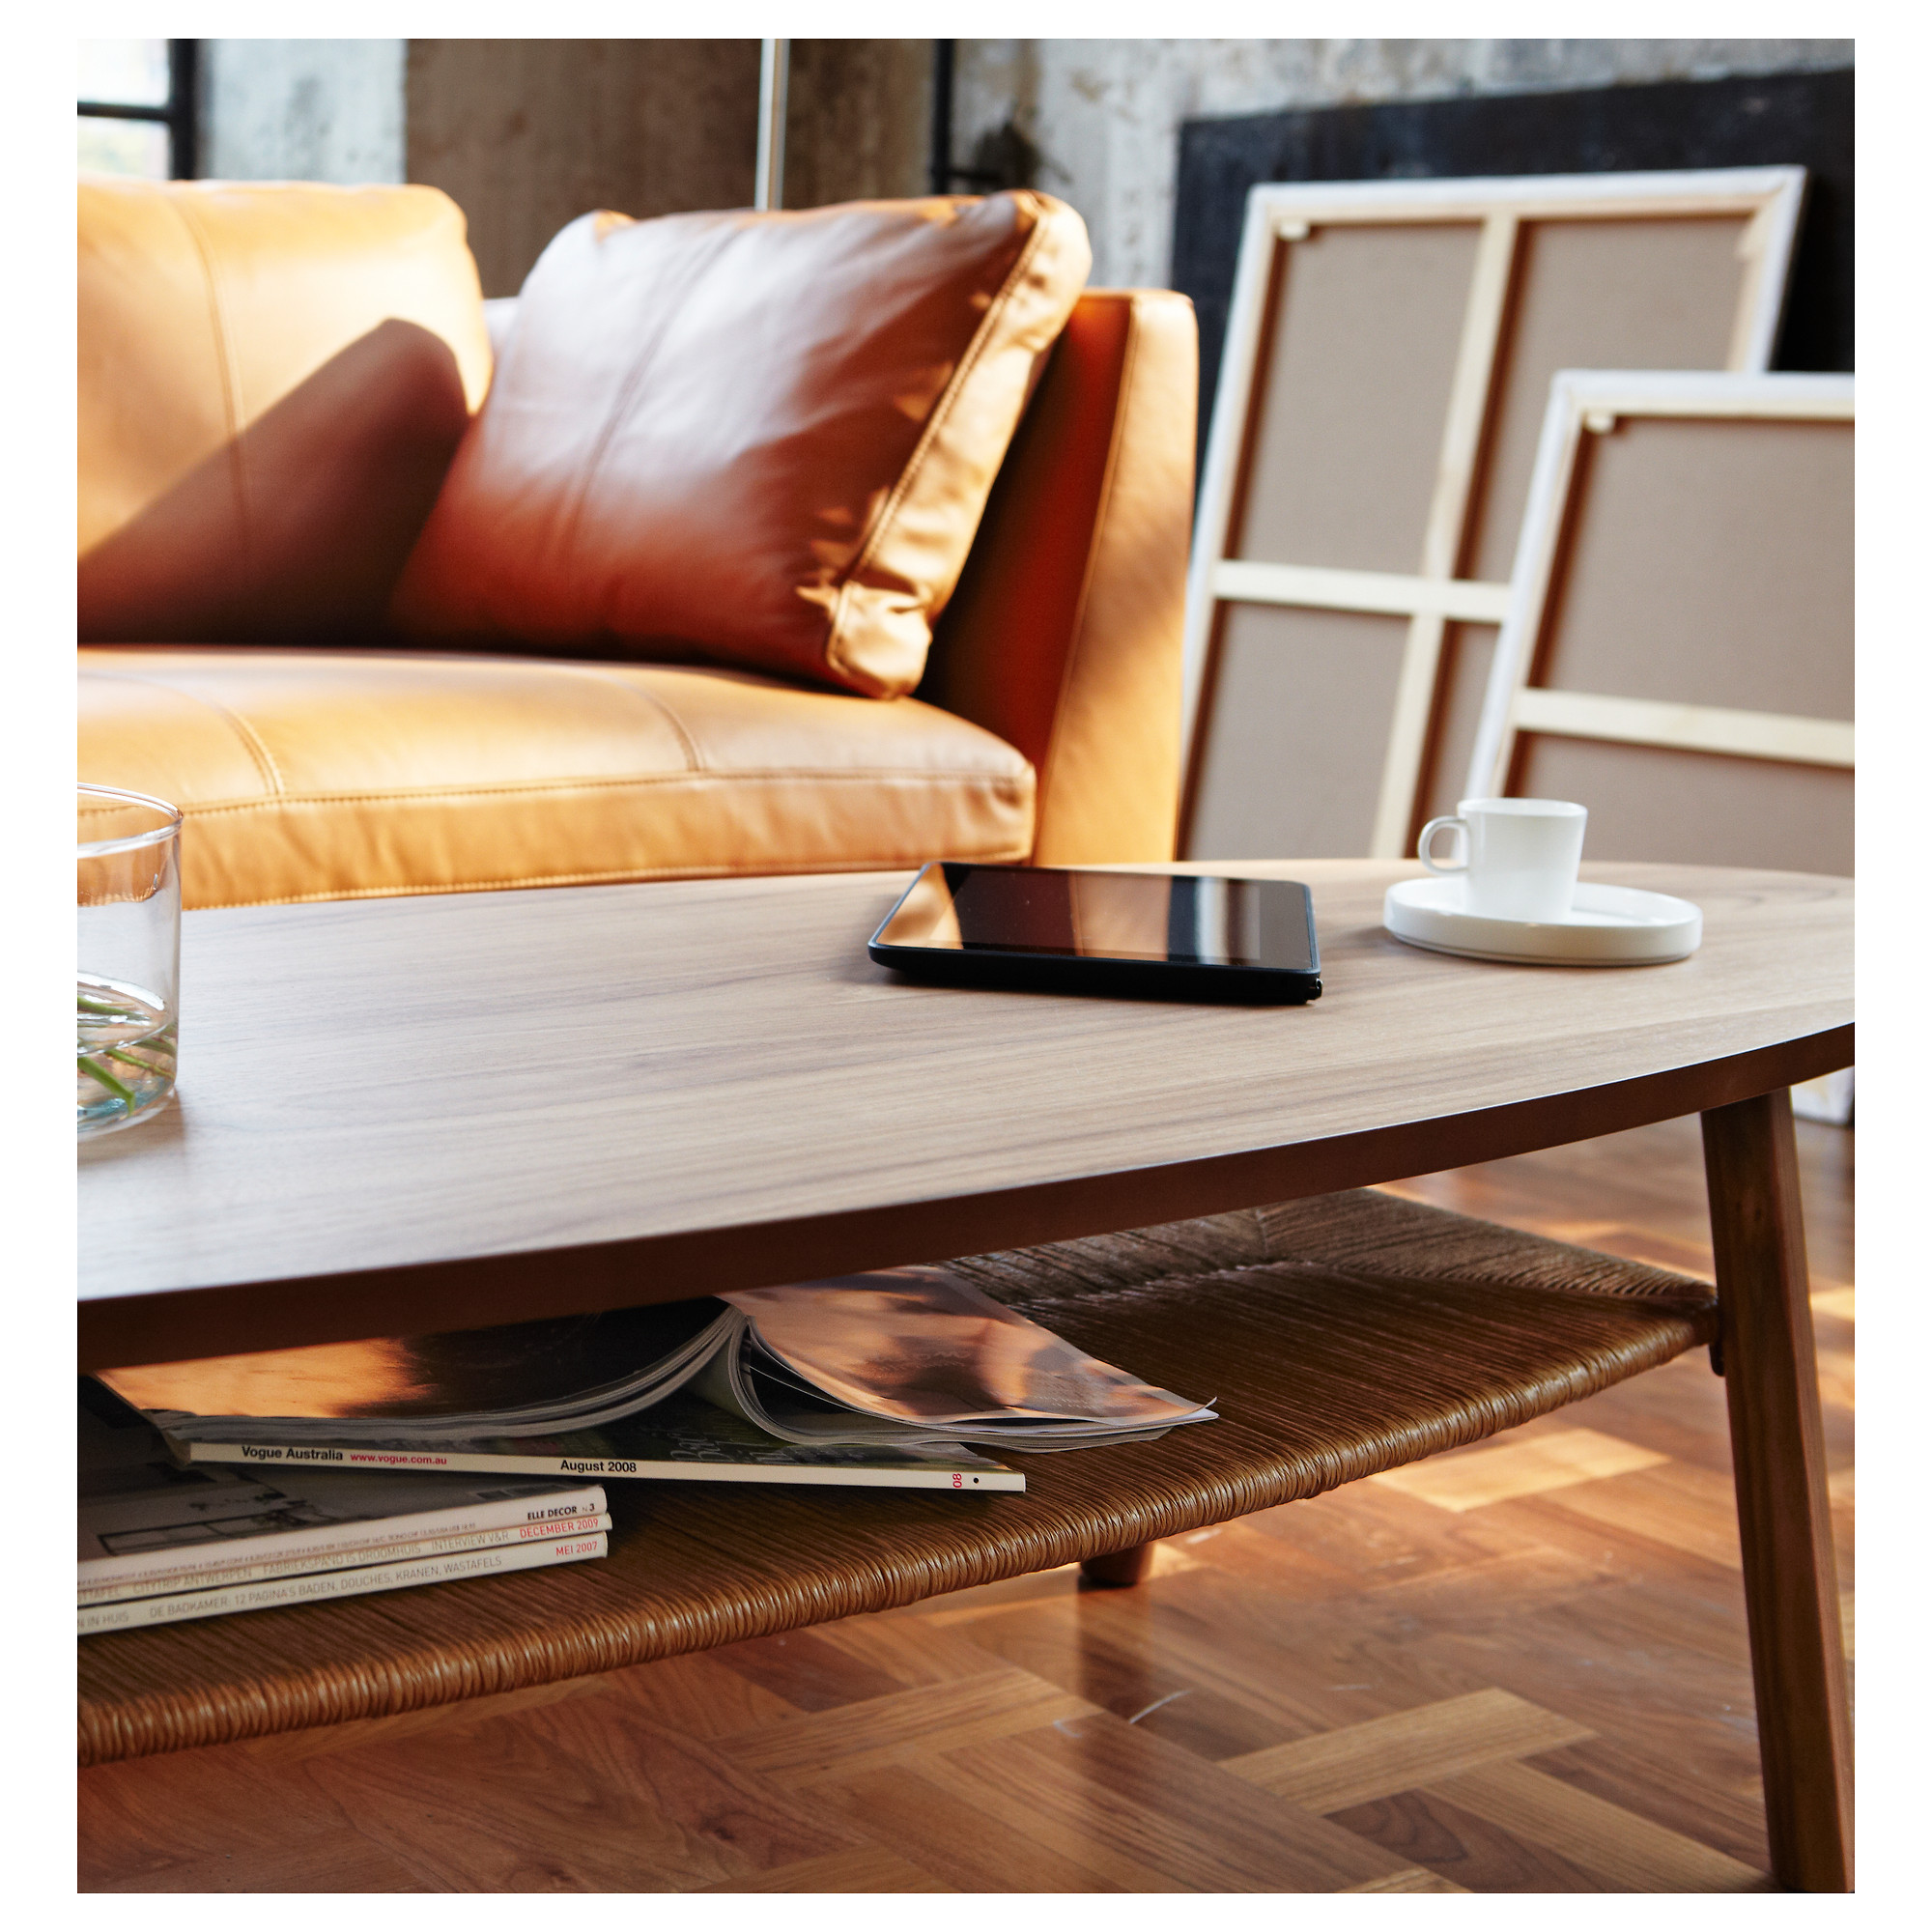 Side Table Badkamer.Ikea Lithuania Shop For Furniture Lighting Home